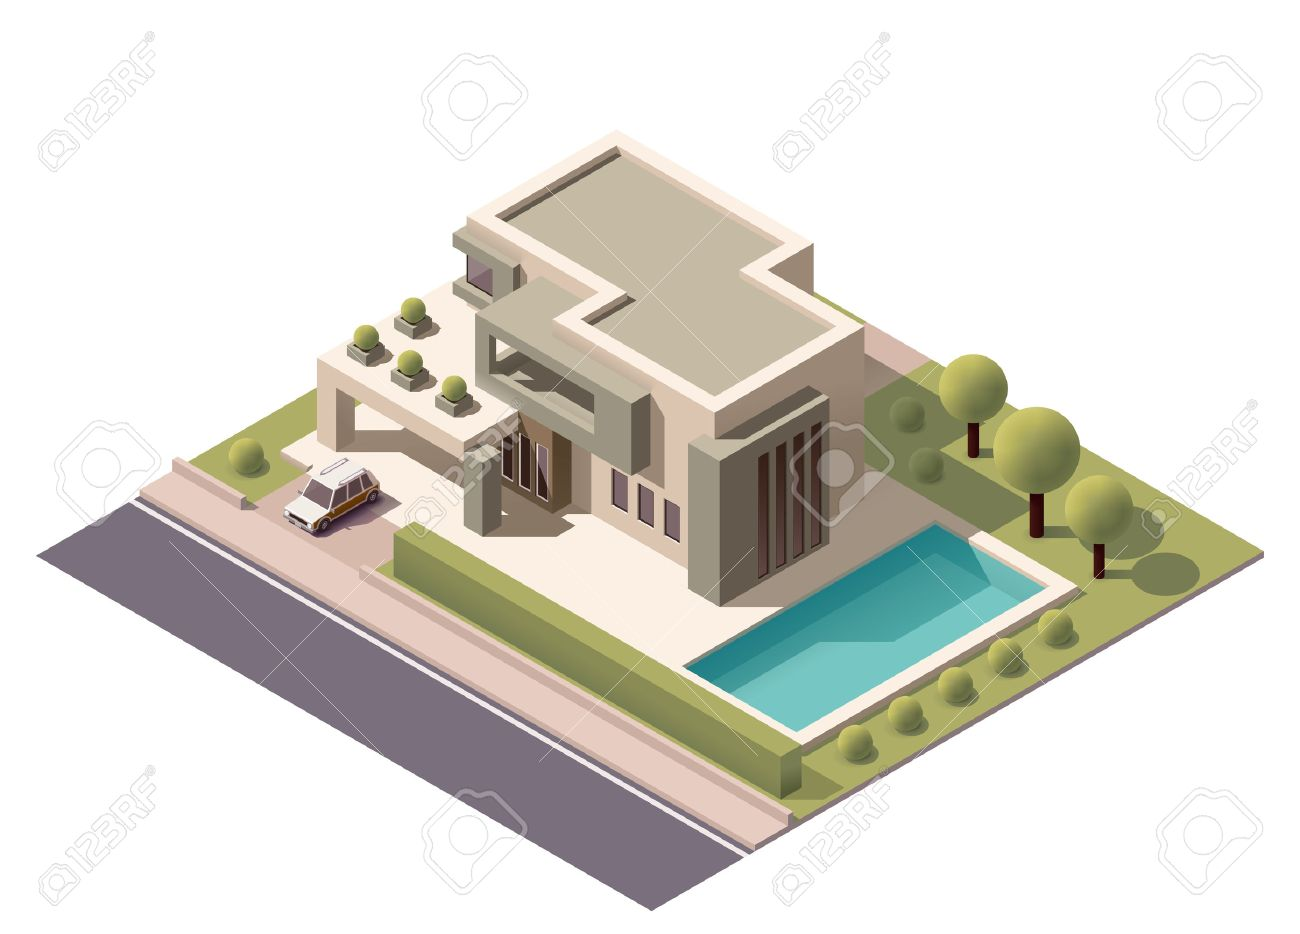 Isometric icon representing modern house with backyard royalty free isometric icon representing modern house with backyard stock vector 41653322 ccuart Choice Image